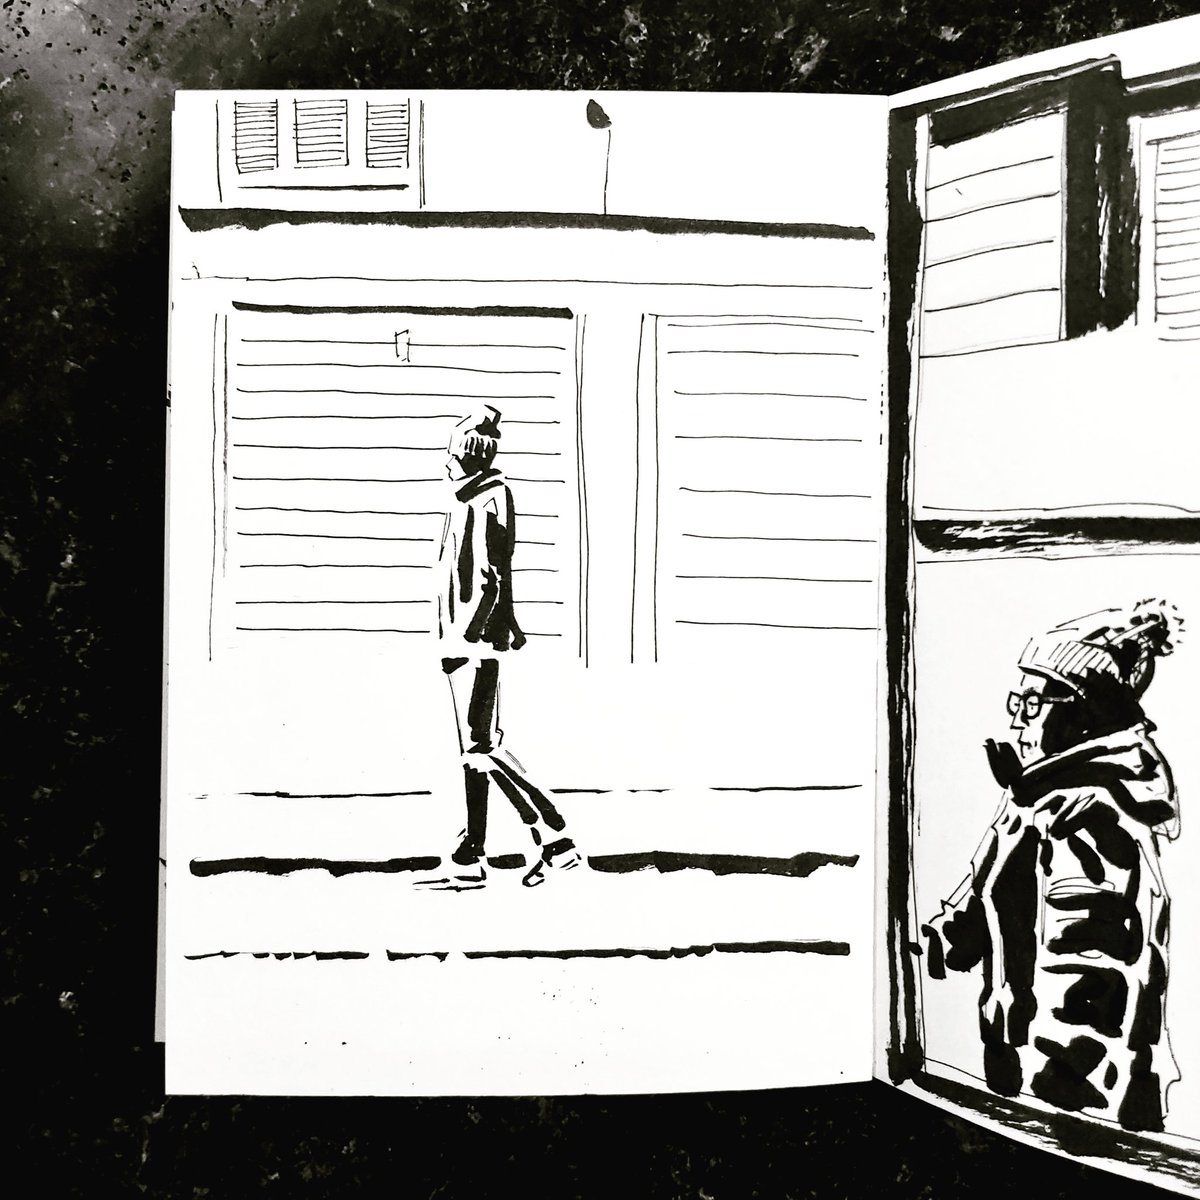 From the Inside 2 Day 113 (262 total) #isolation study Kitchen window Passerby No 153 #isolationlife #stayathome #lockdown #lockdown2uk #sketchbook #sketch #drawing #draw #doodle #ink #lineart #lifedrawing #figuredrawing #walk #artoftheday #art #artwork #artist #illustration